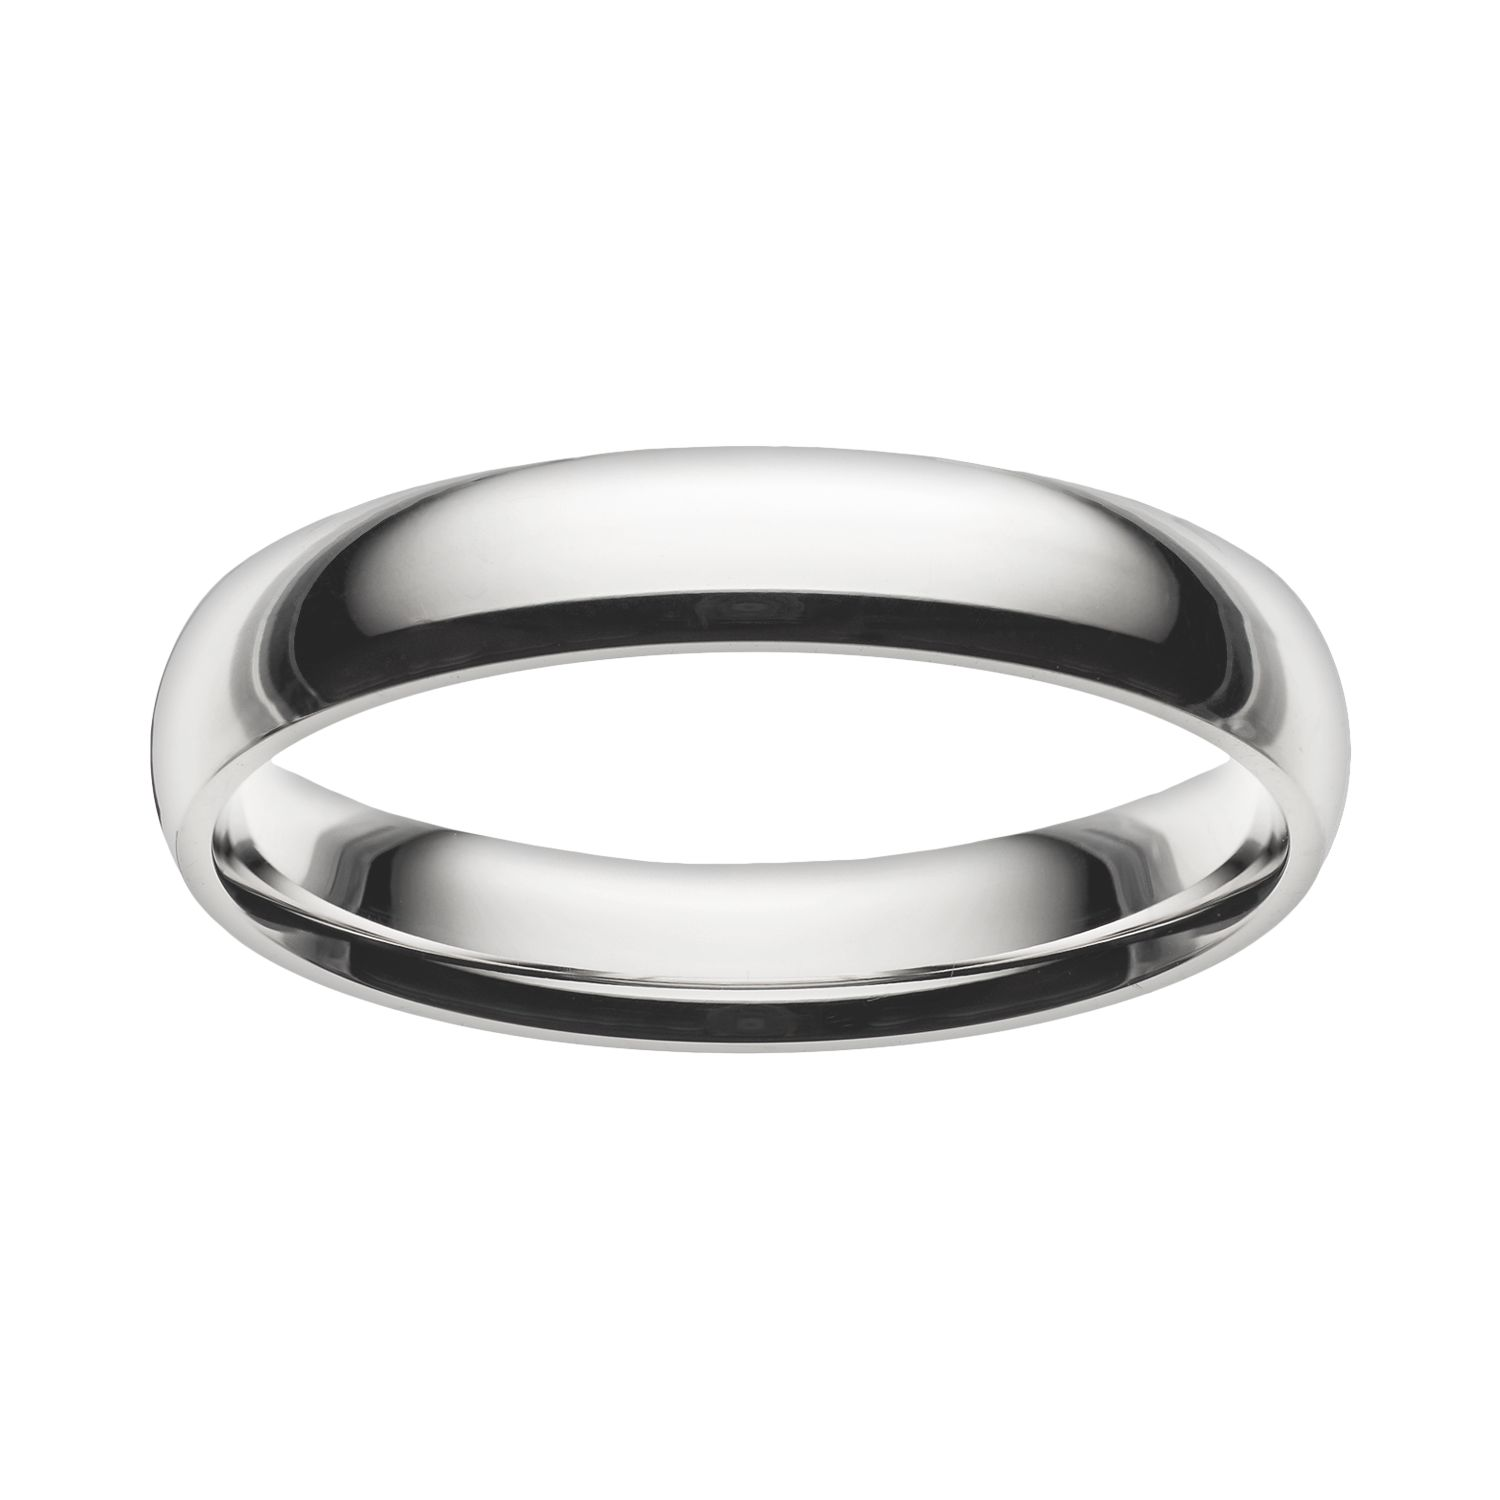 cherish always stainless steel wedding band men stainless steel wedding band Cherish Always Stainless Steel Wedding Band Men